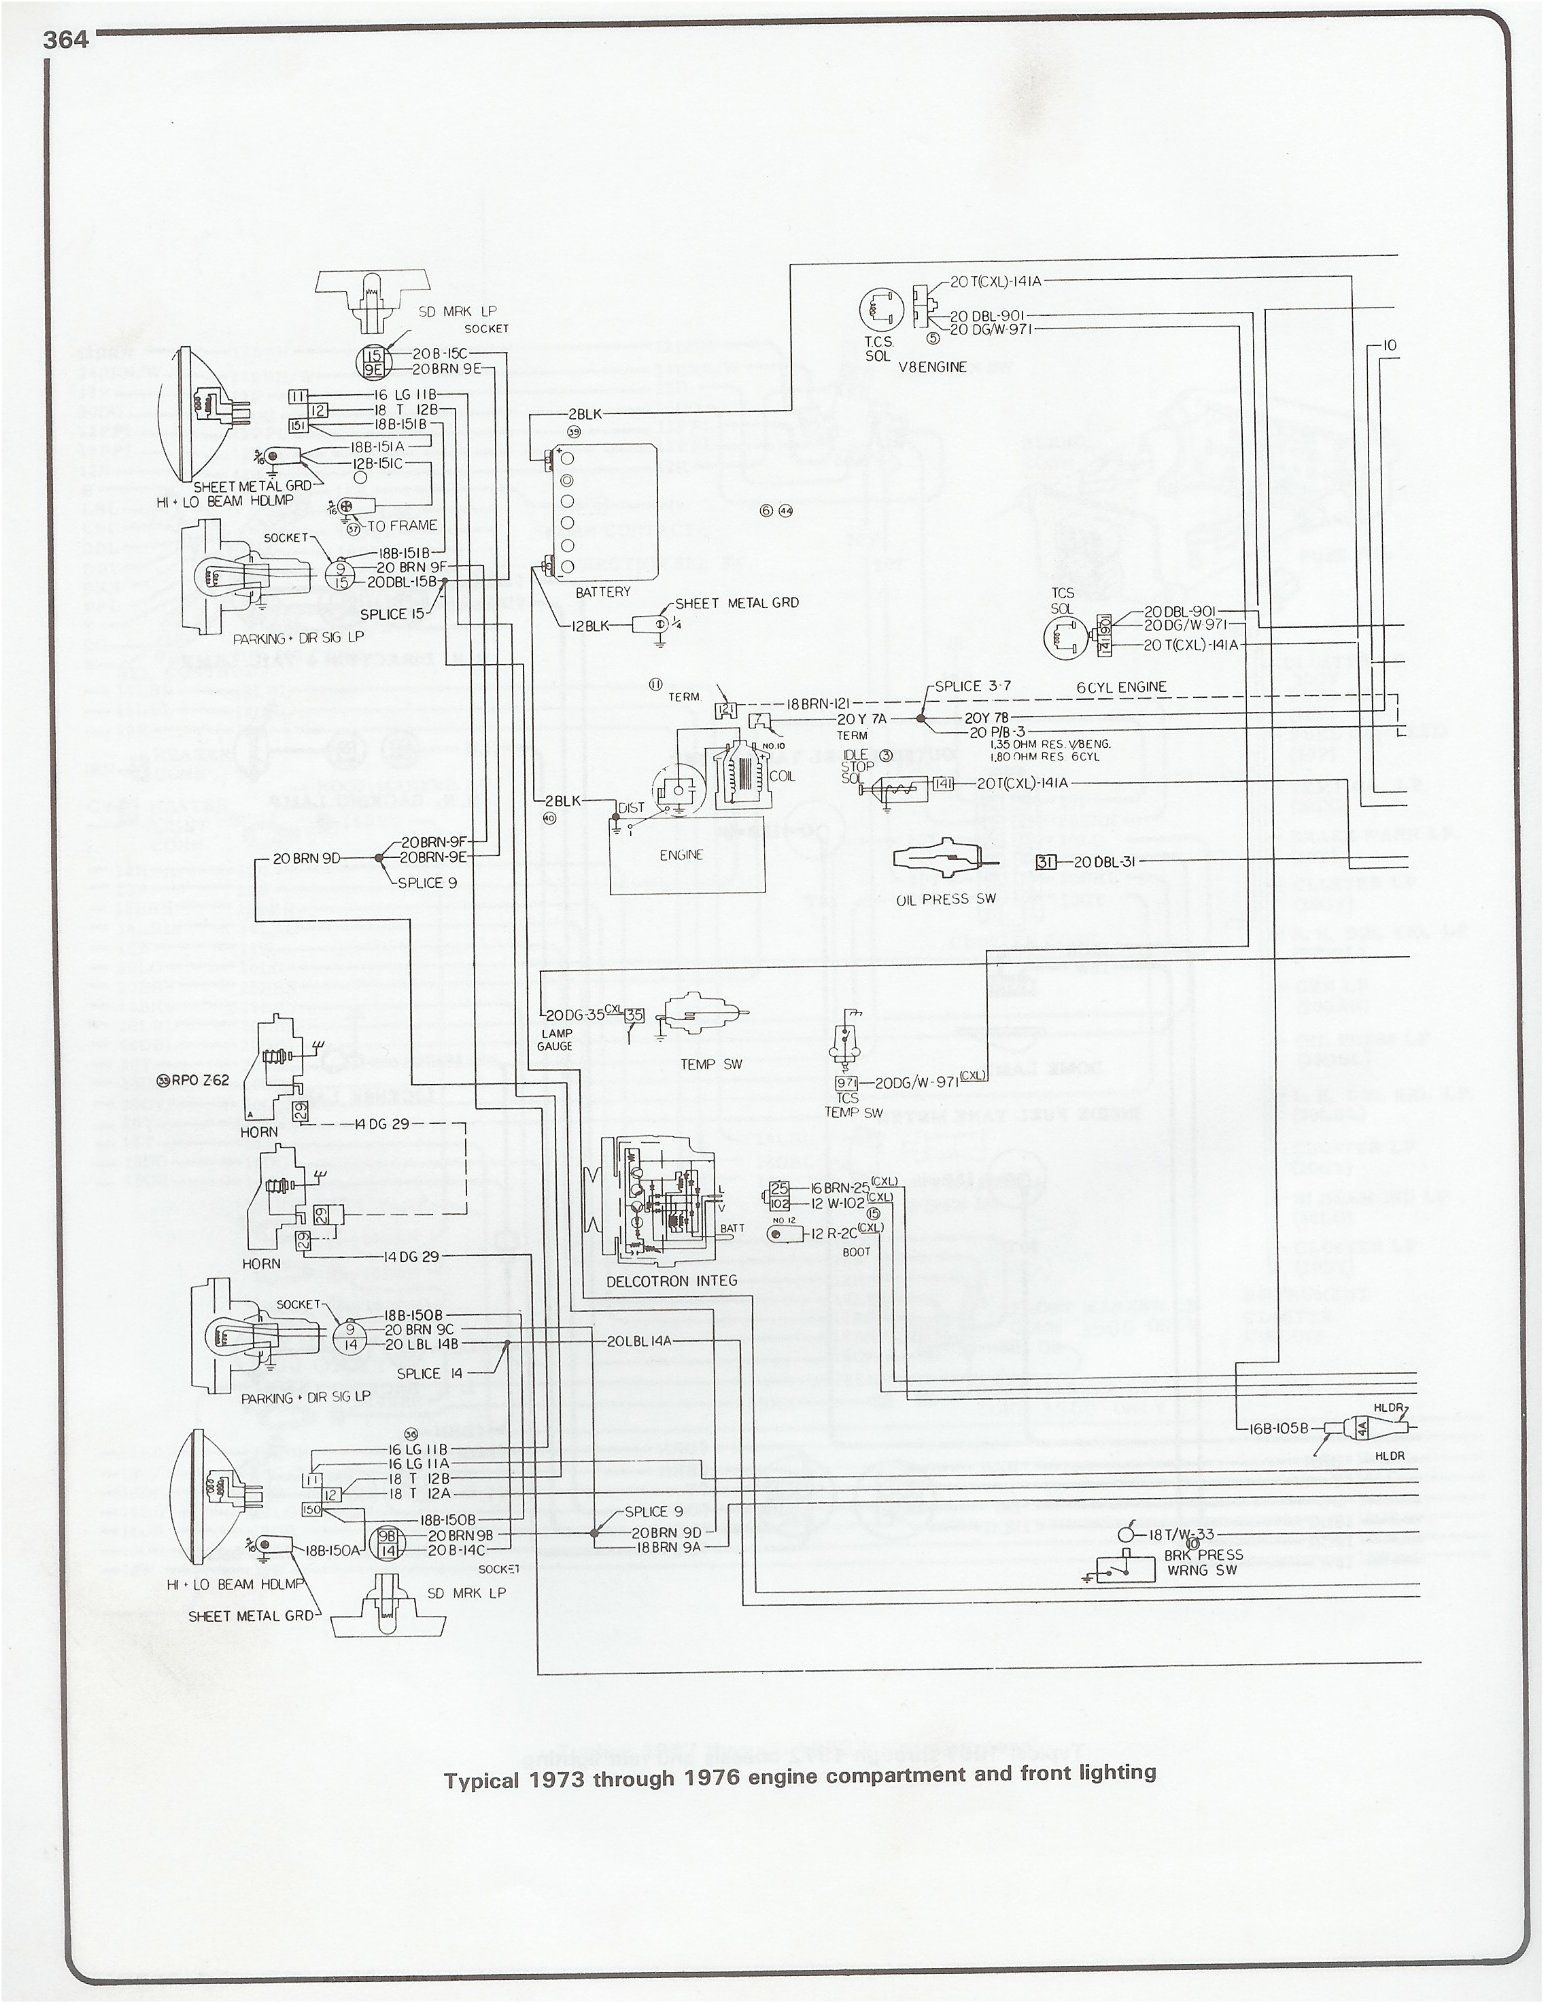 medium resolution of wiring diagram 1973 1976 chevy pickup chevy wiring diagram